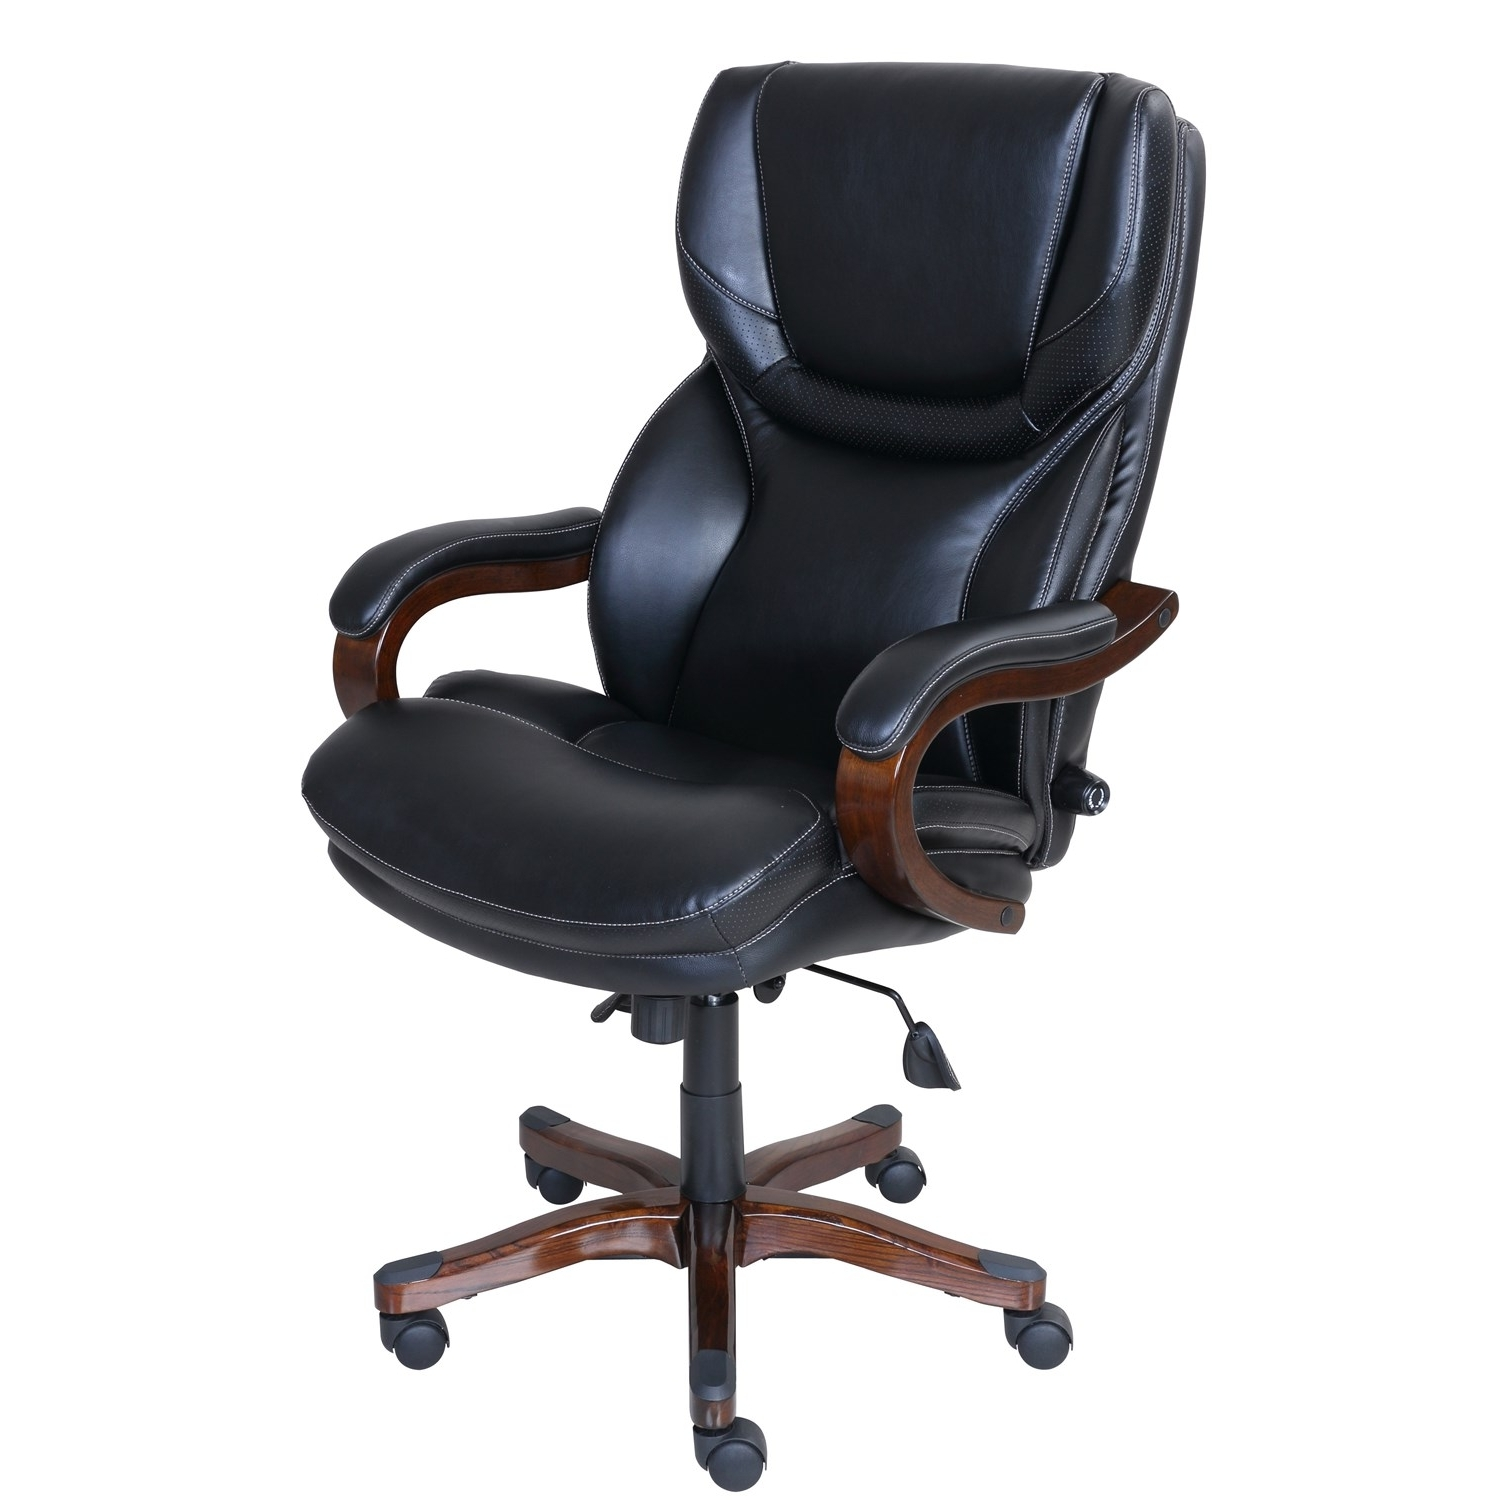 Serta At Home 46859 Executive Office Chair In Black With Bonded With Regard To Well Liked Premium Executive Office Chairs (View 11 of 20)